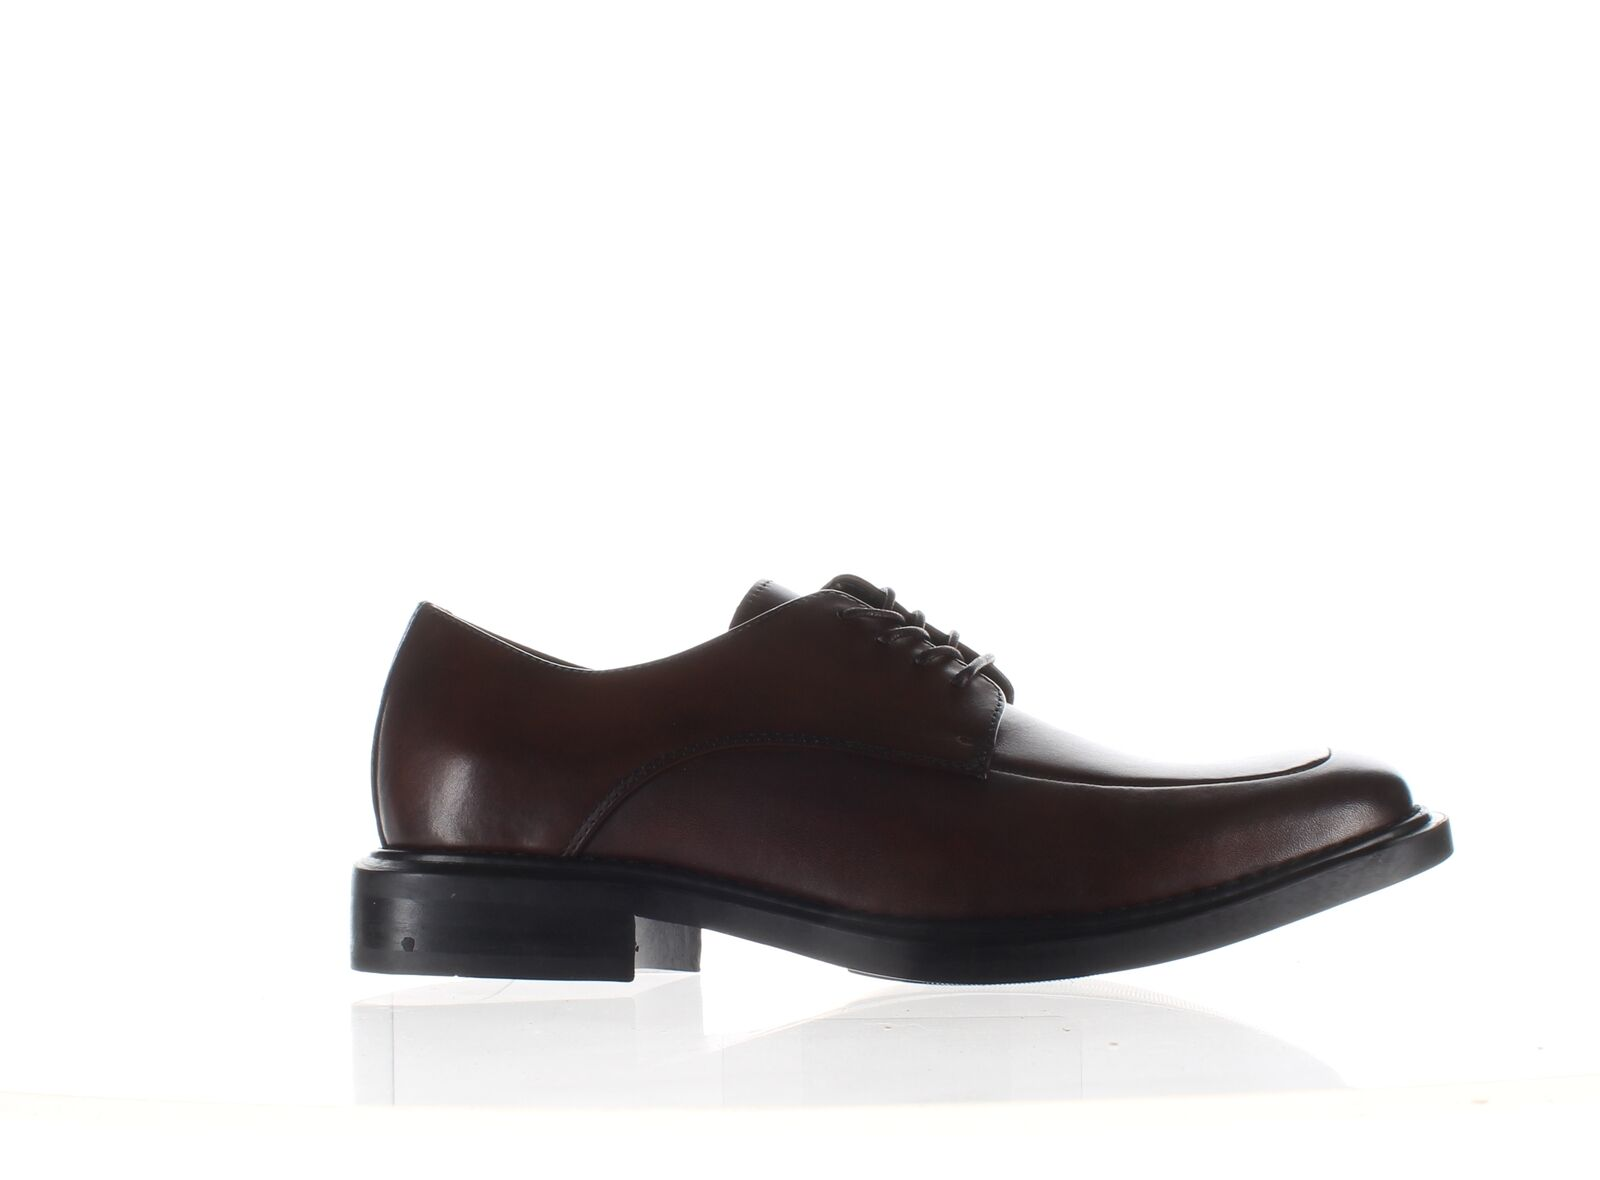 Kenneth Cole Mens Merge Brown Oxford Dress Shoe Size 8